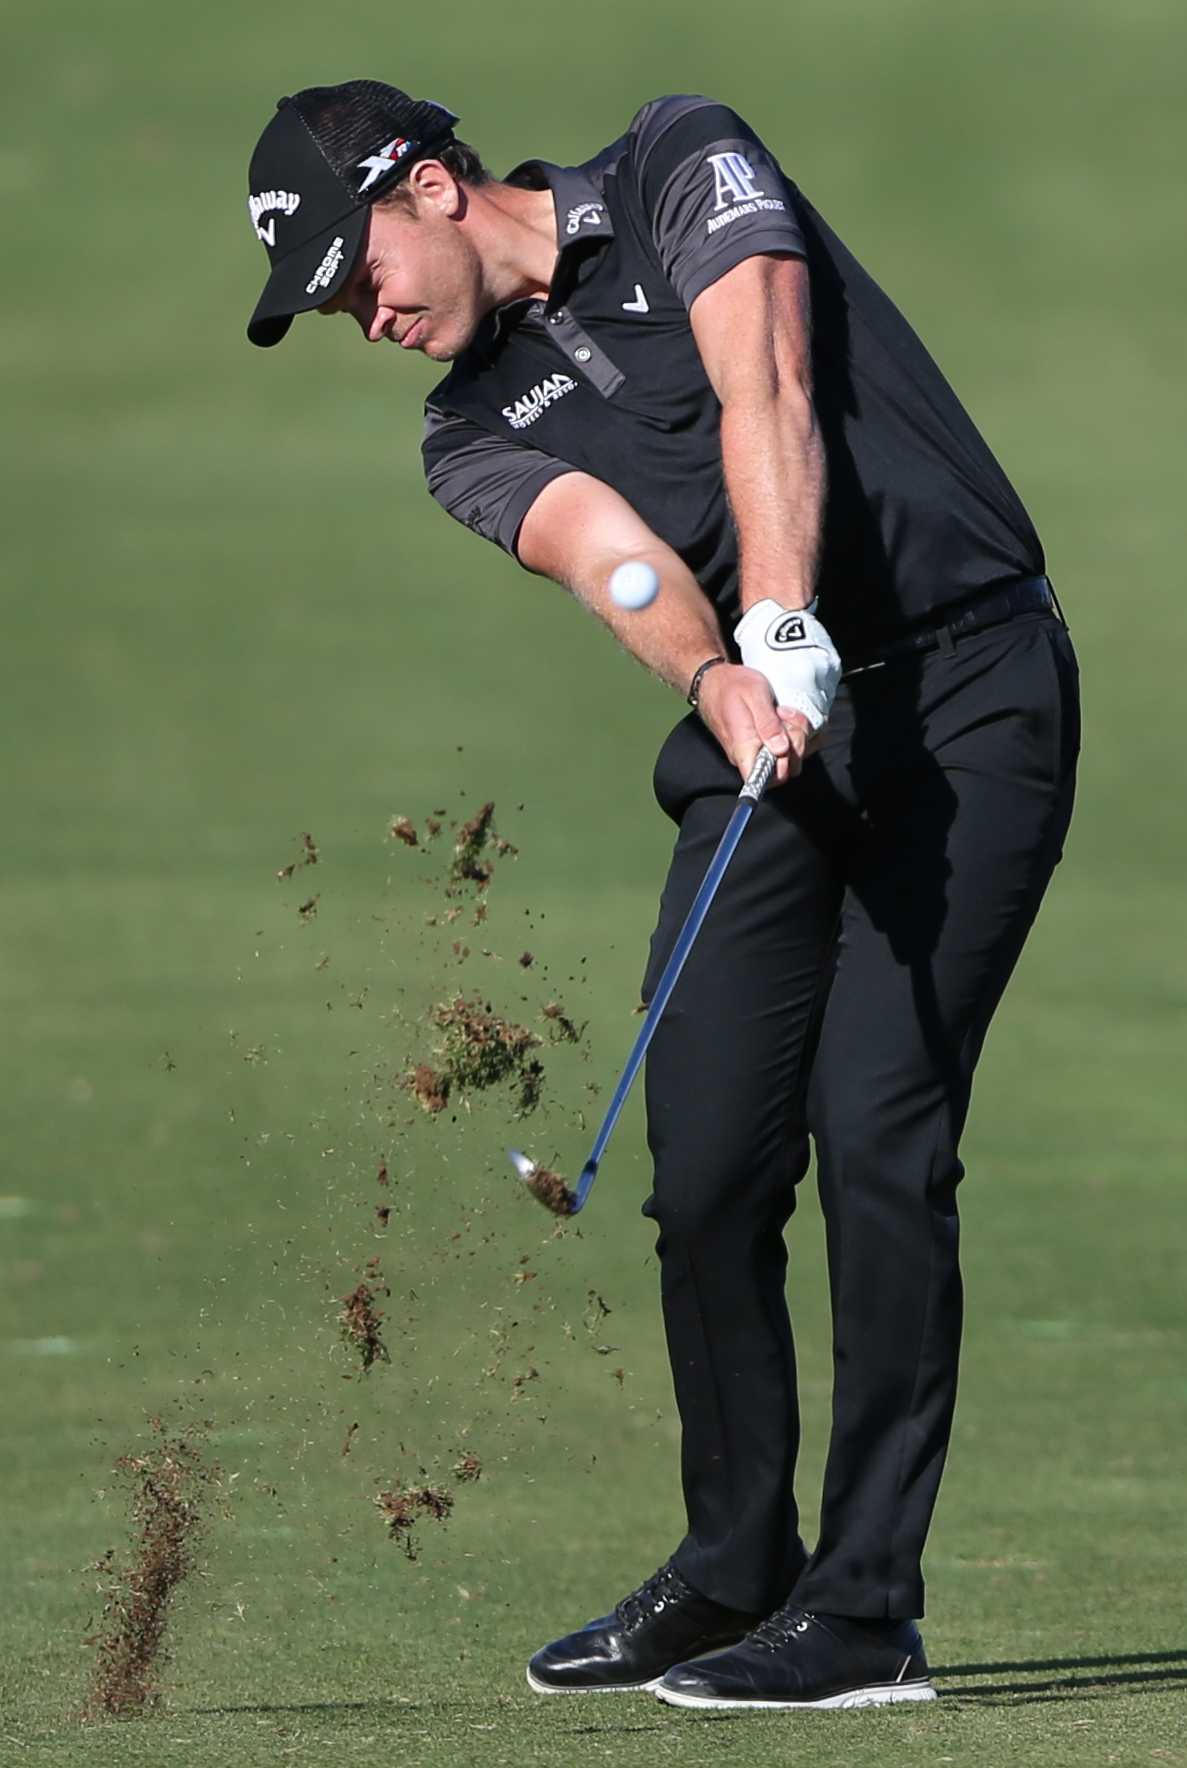 Danny Willett of England plays a shot on the 14th hole during 3rd round of the Dubai Desert Classic golf tournament in Dubai, United Arab Emirates, Saturday, Feb. 6, 2016.